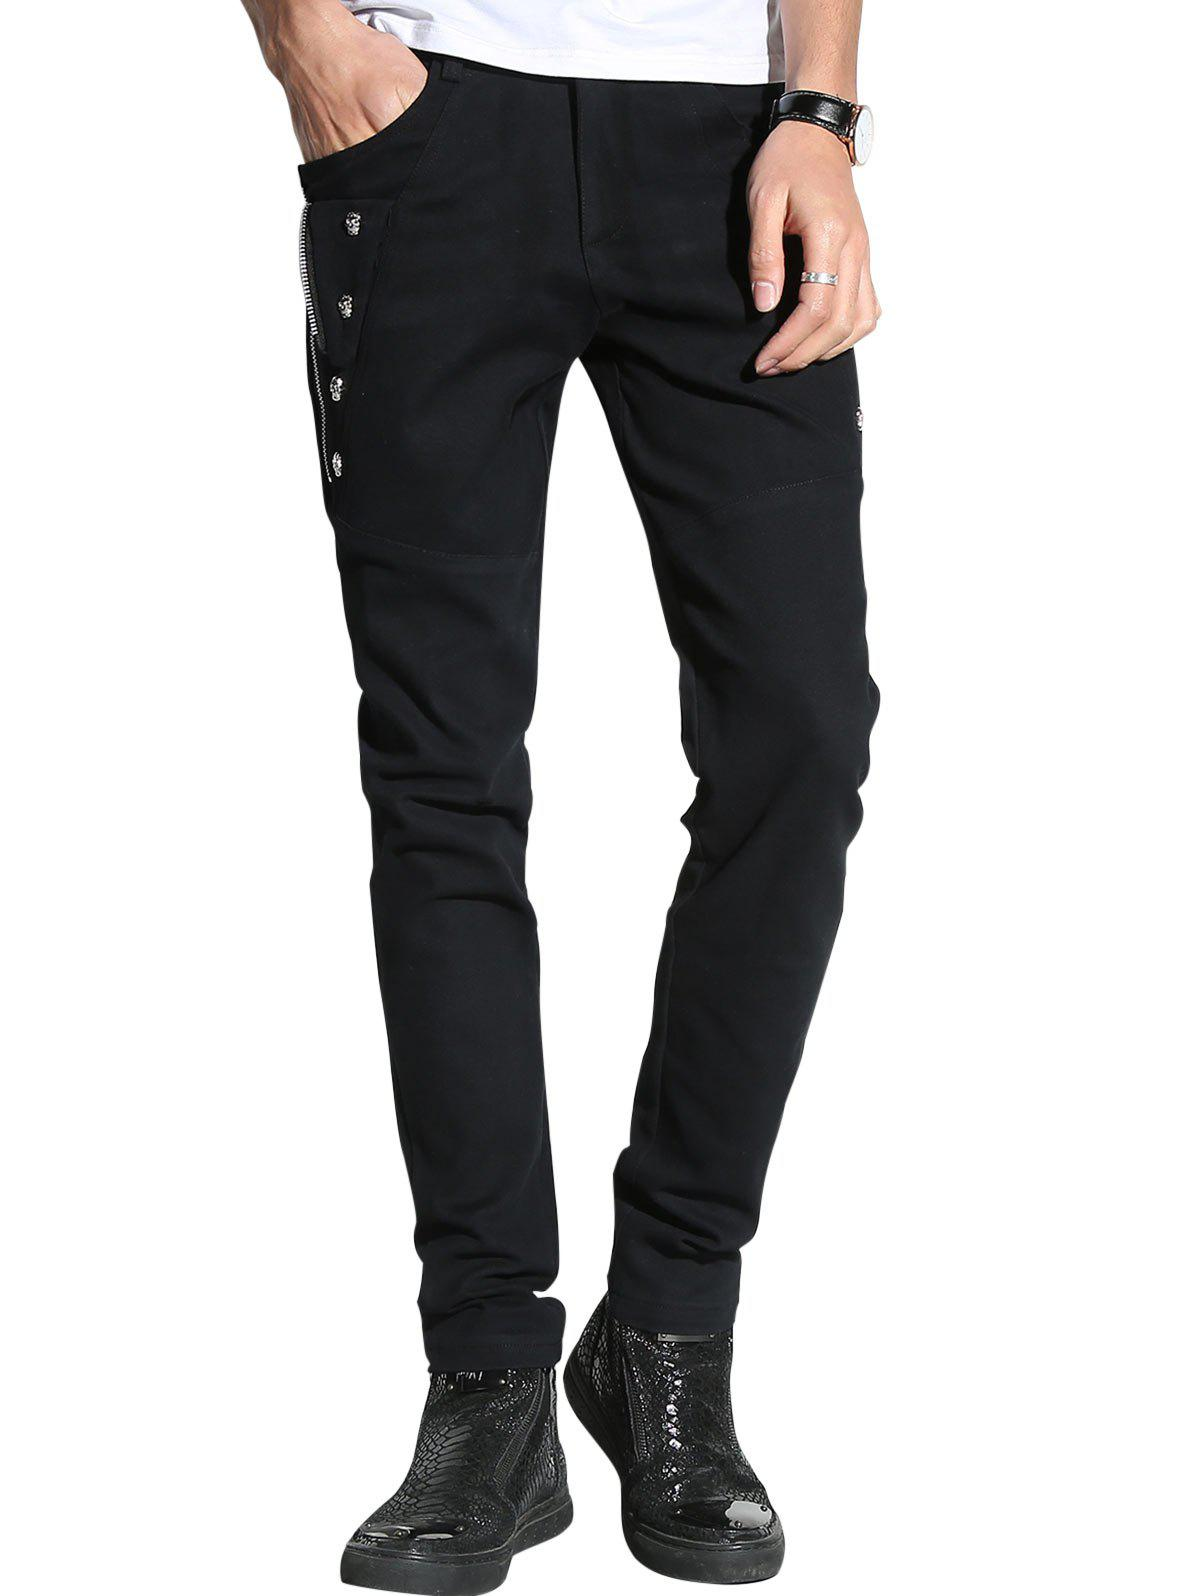 Slim Fit Zip and Skull Embellished Pants - BLACK 36